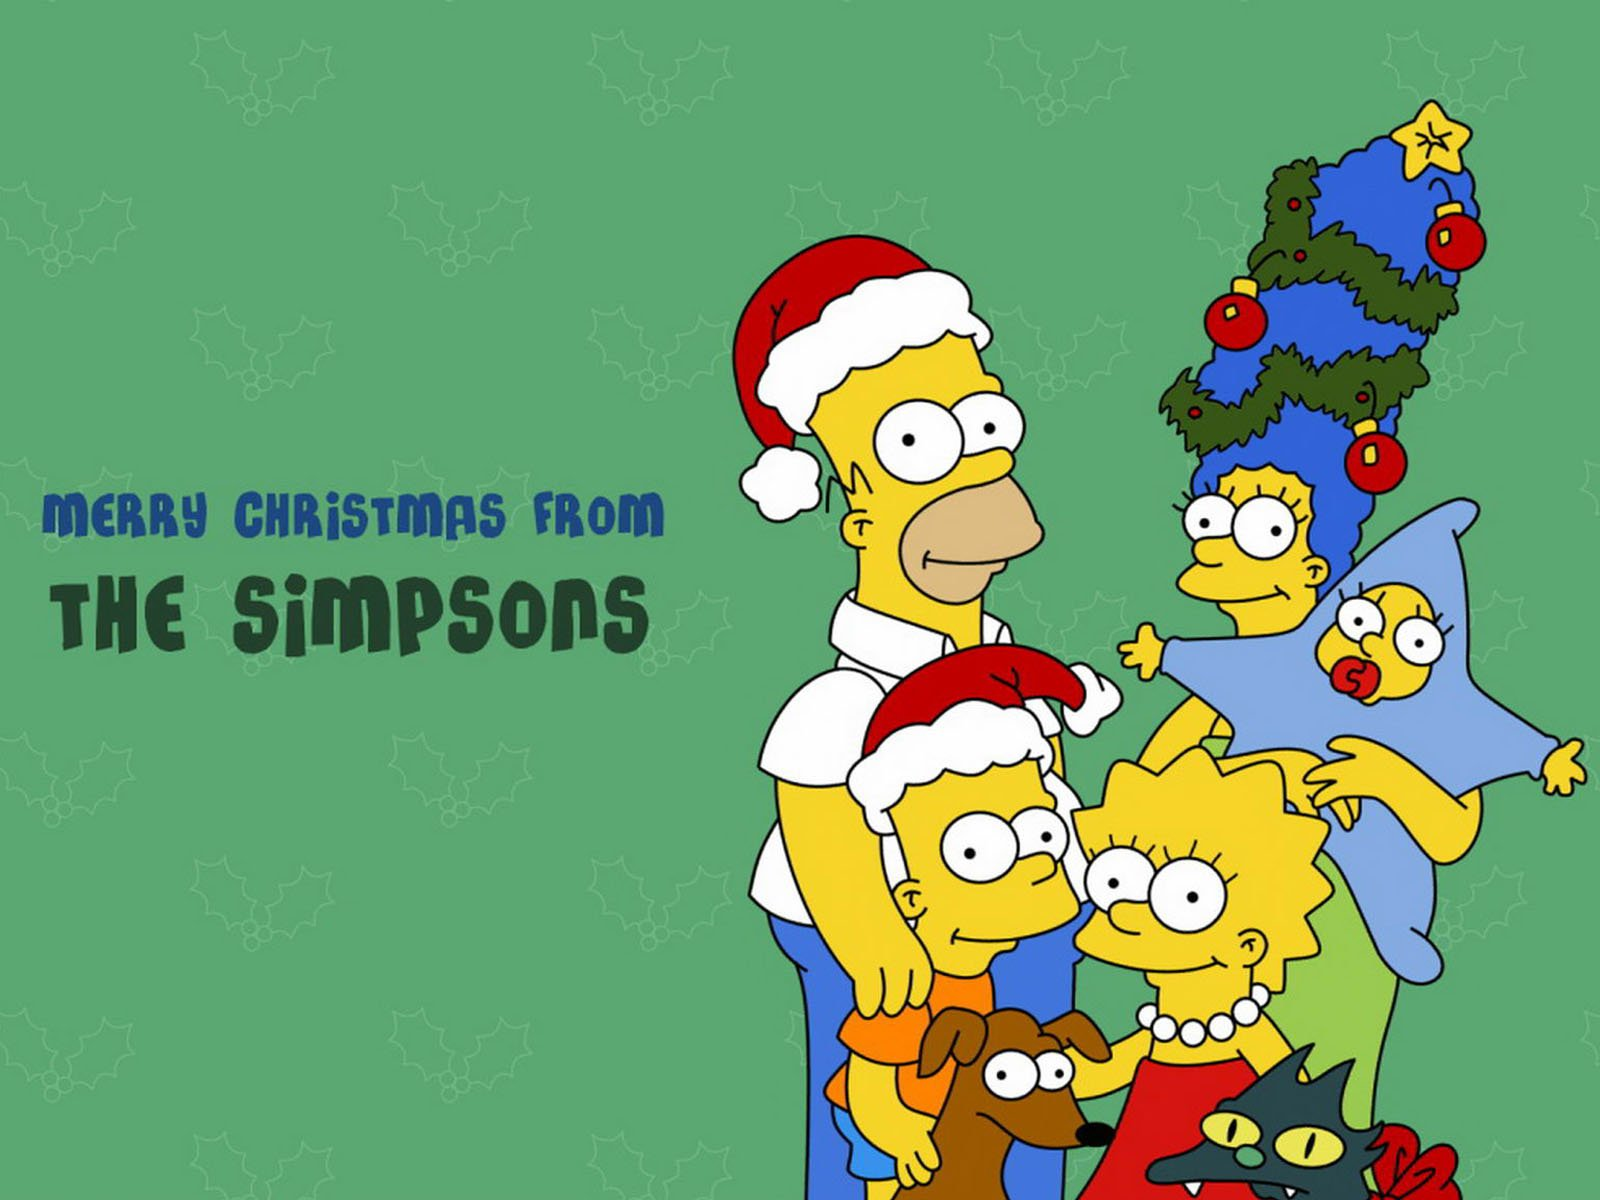 Merry Christmas from The Simpsons Wallpaper   Christmas Cartoon 1600x1200